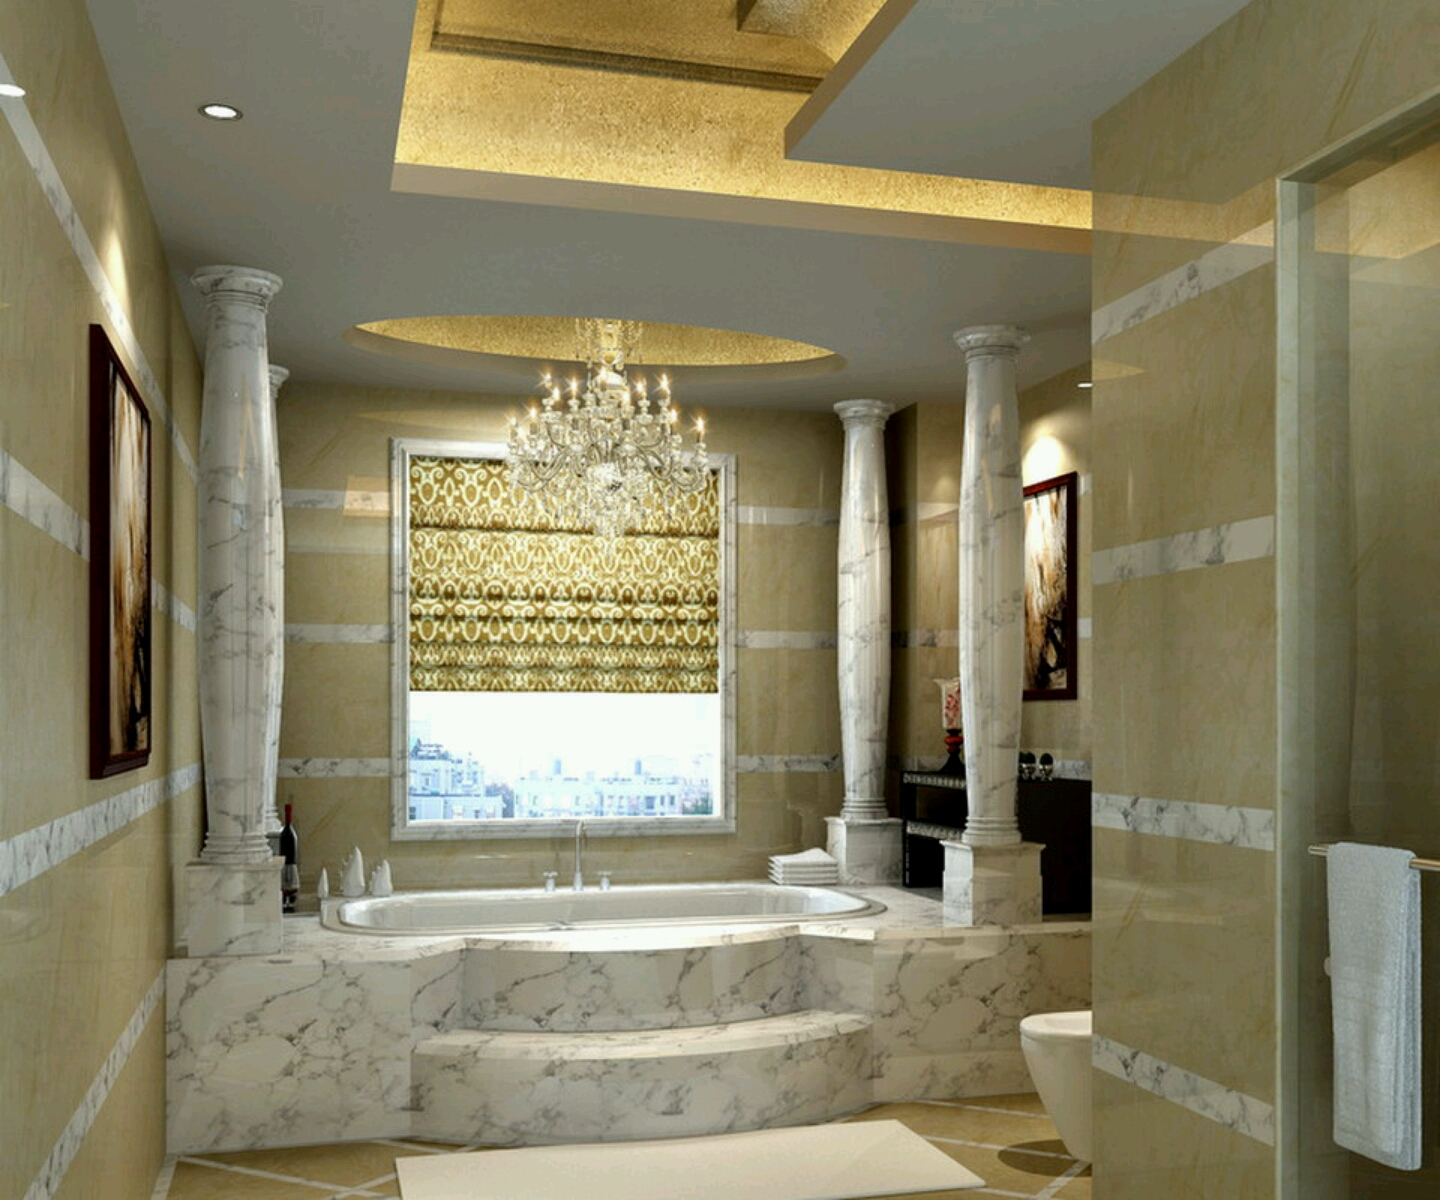 Luxurious Bathroom Design photo - 3